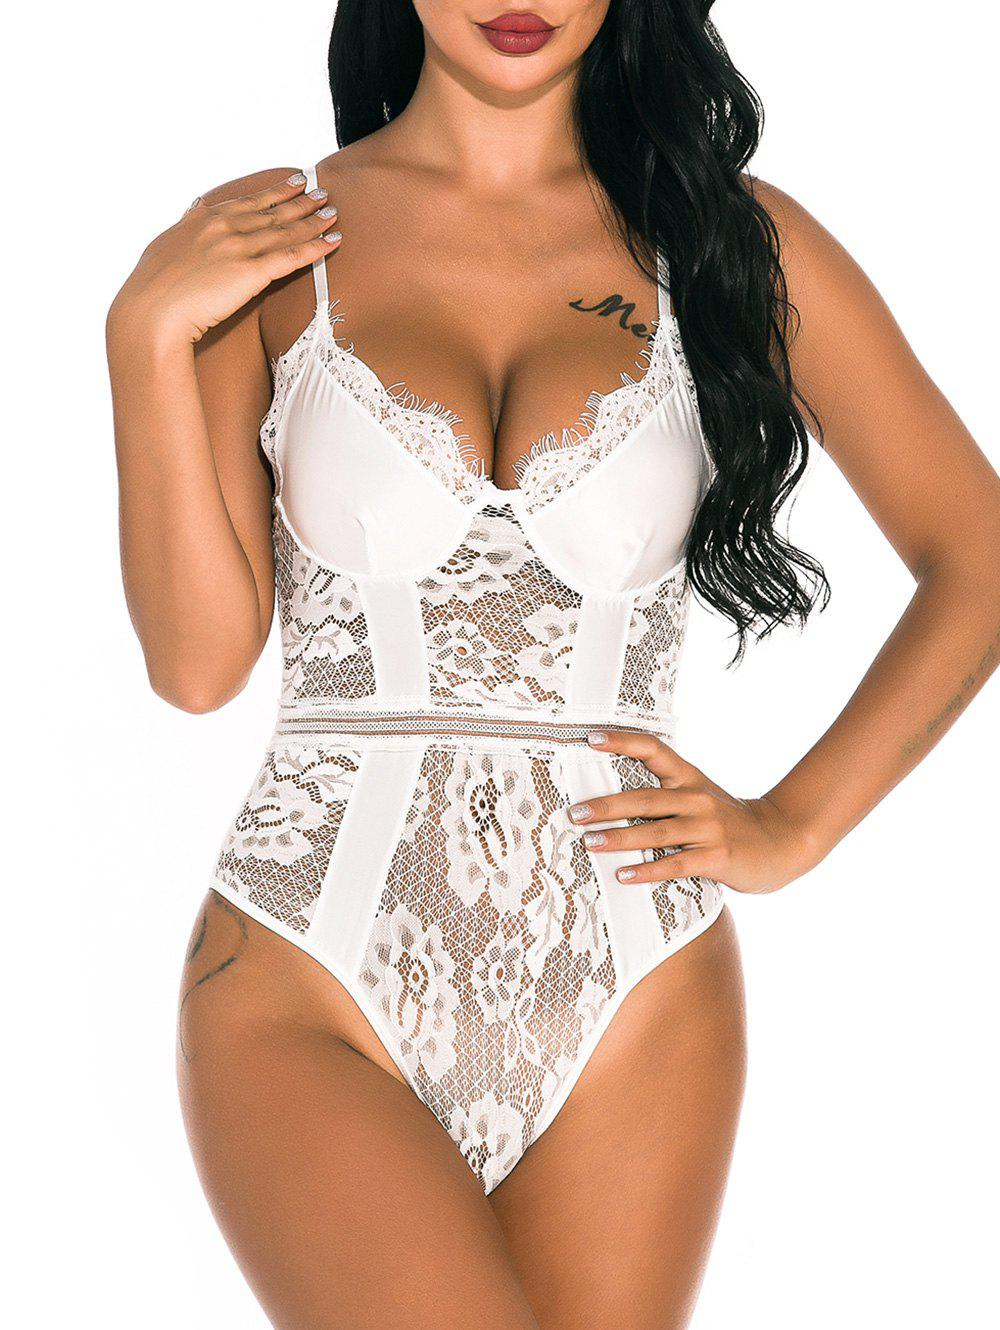 Fancy Sheer Lace Panel Snap Crotch Teddy